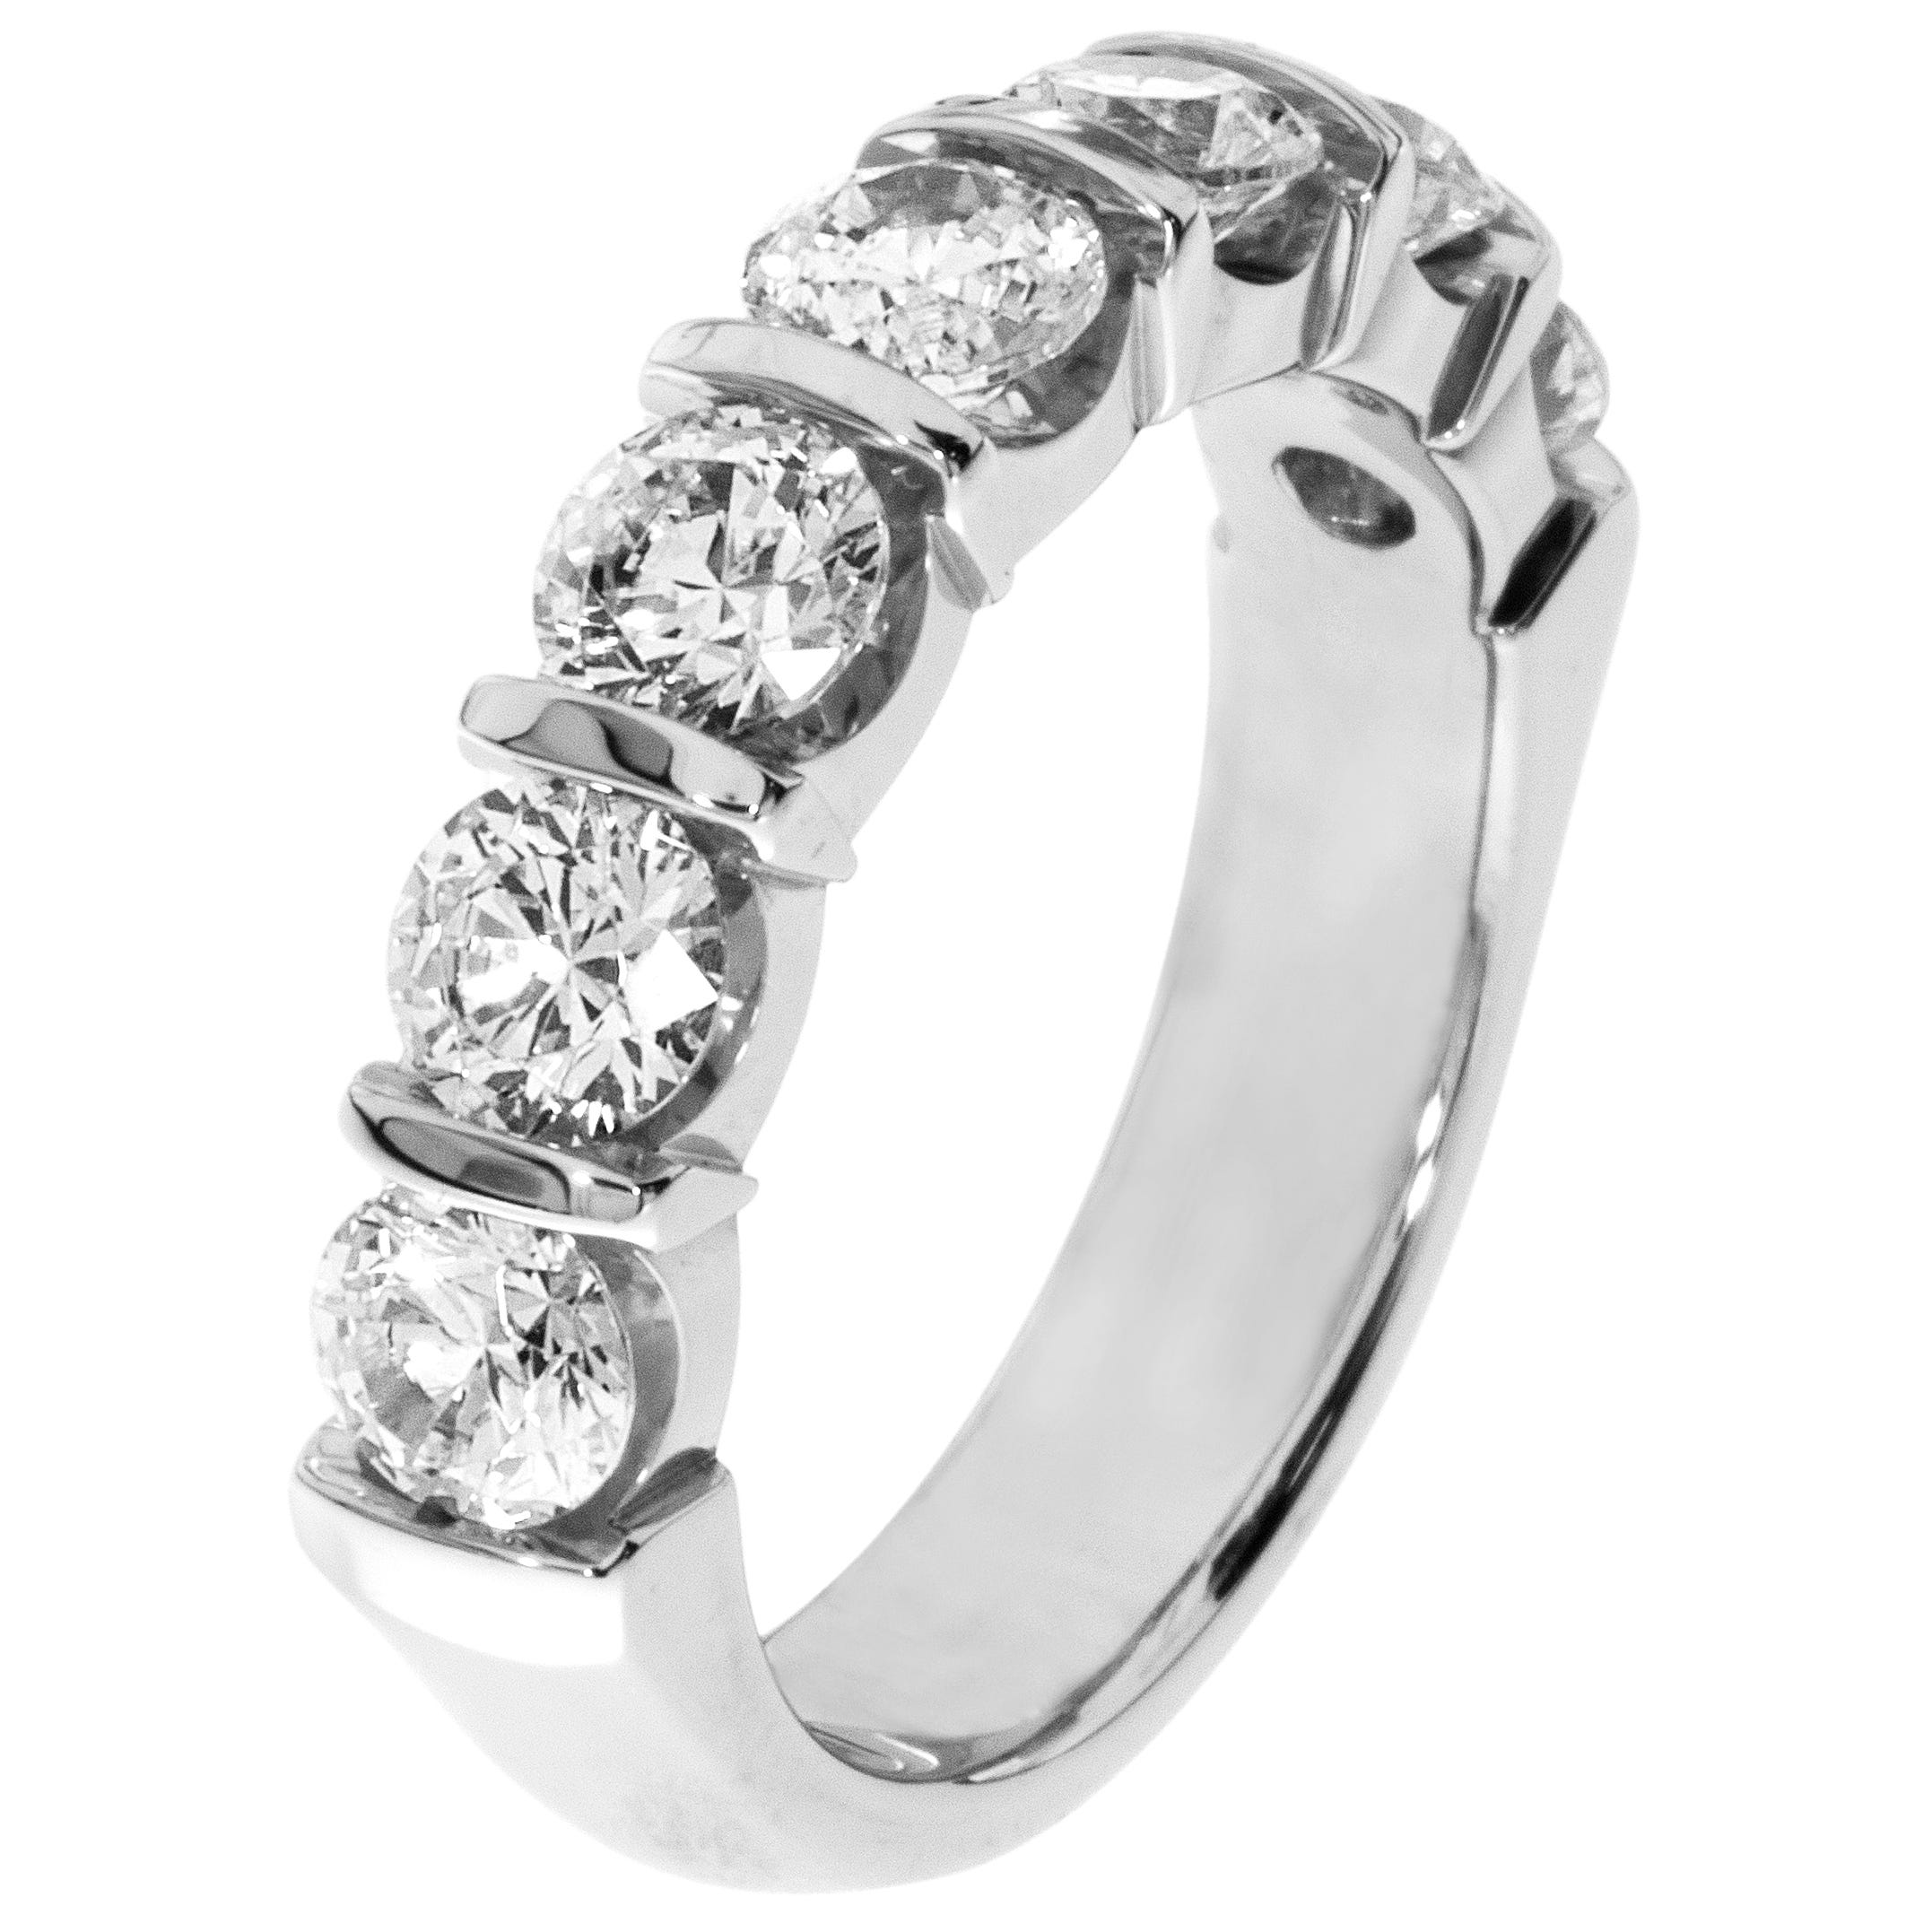 7-Stone Diamond Band 2ctw. (G-H, SI) 14K White Gold